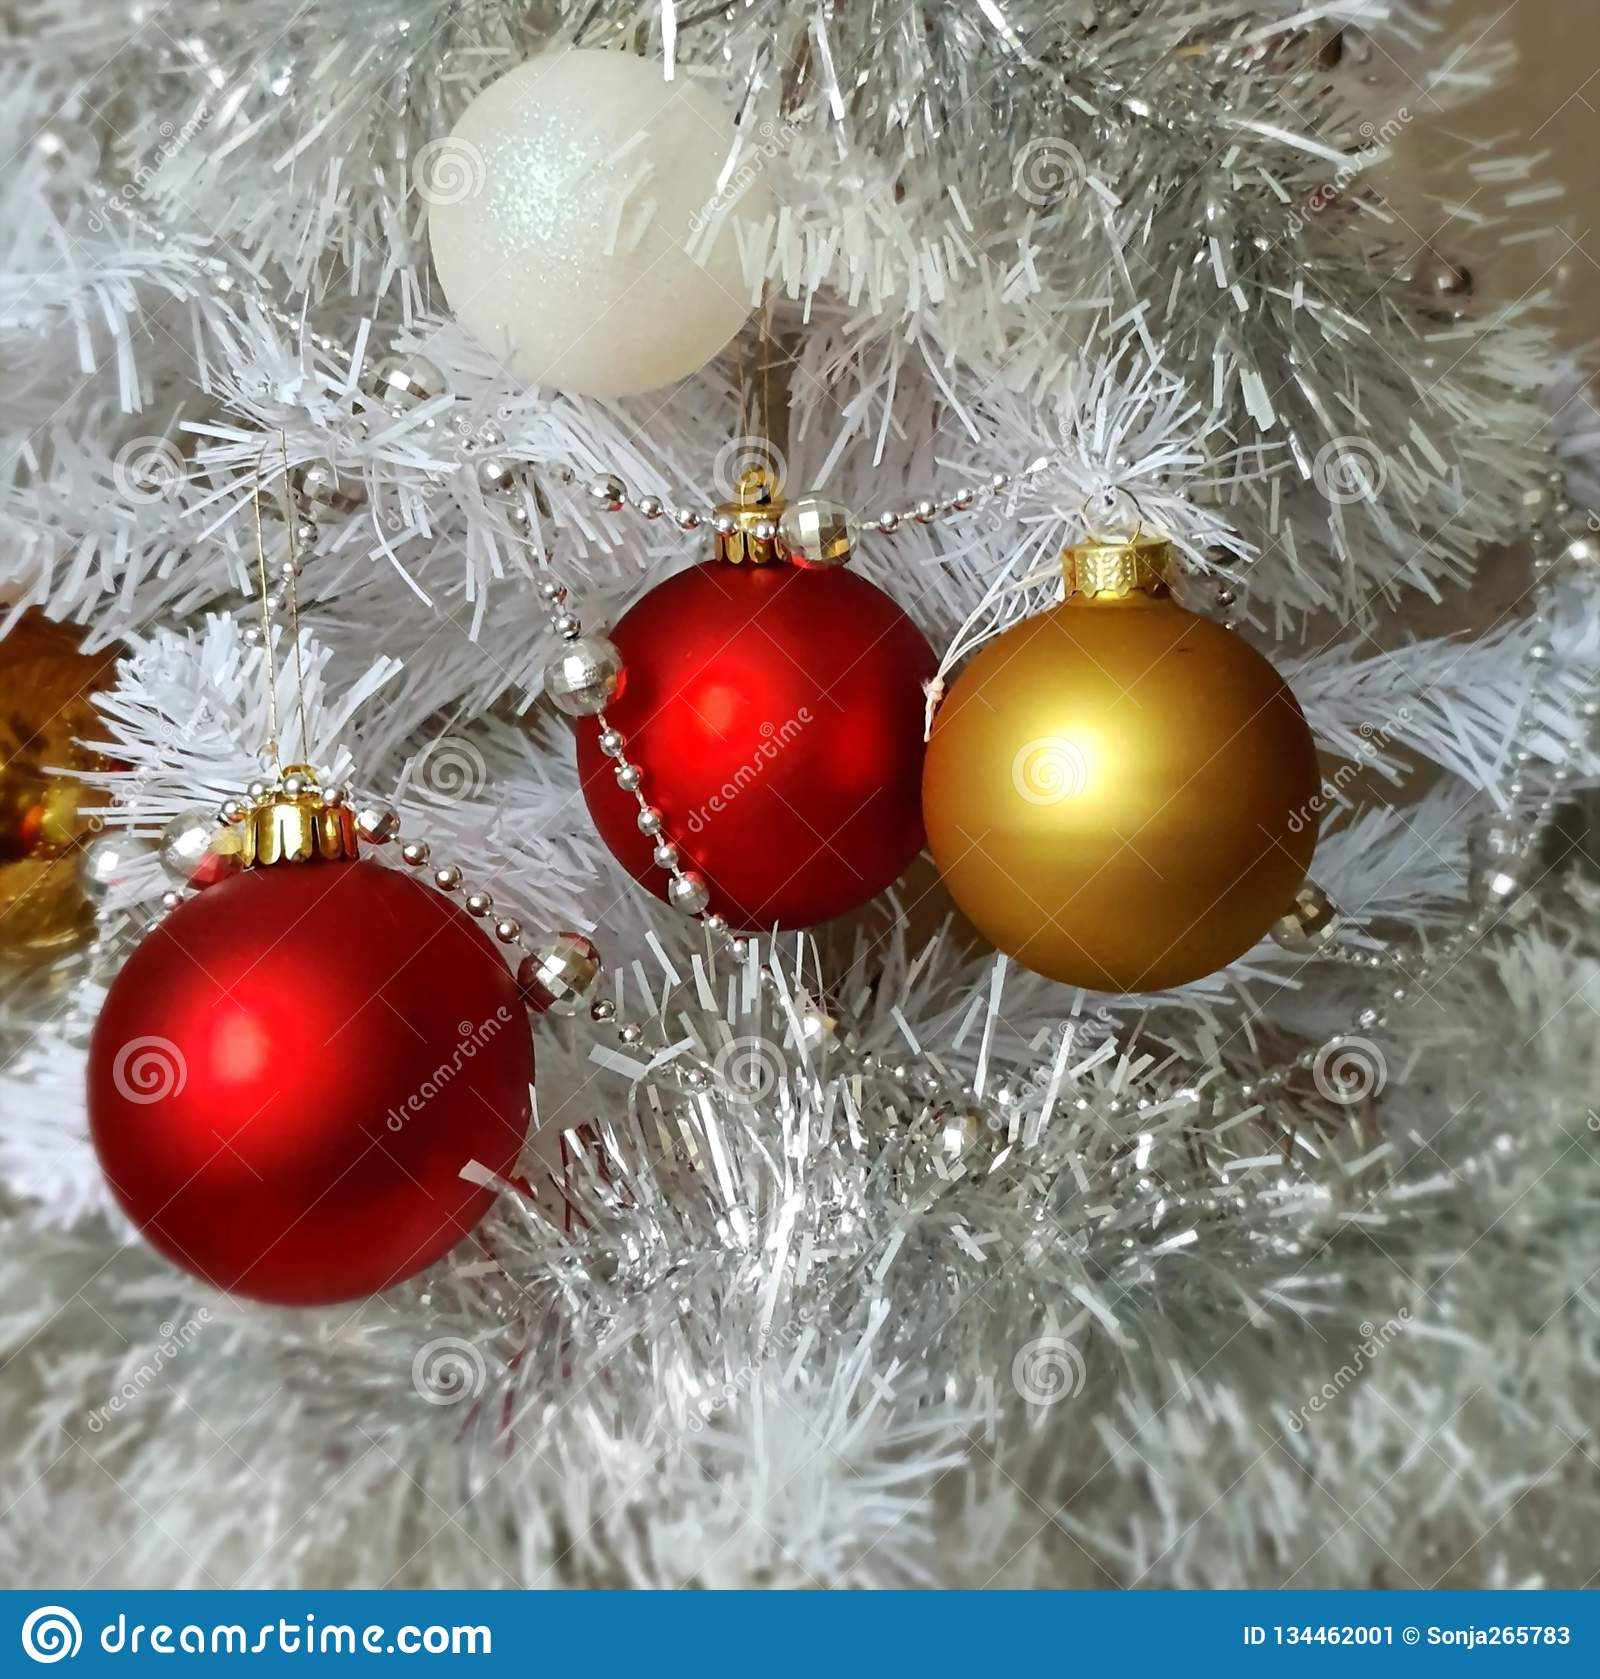 Red And Silver Christmas Decorations Ideas.White Christmas Tree Gold Silver Red White Balls Silver